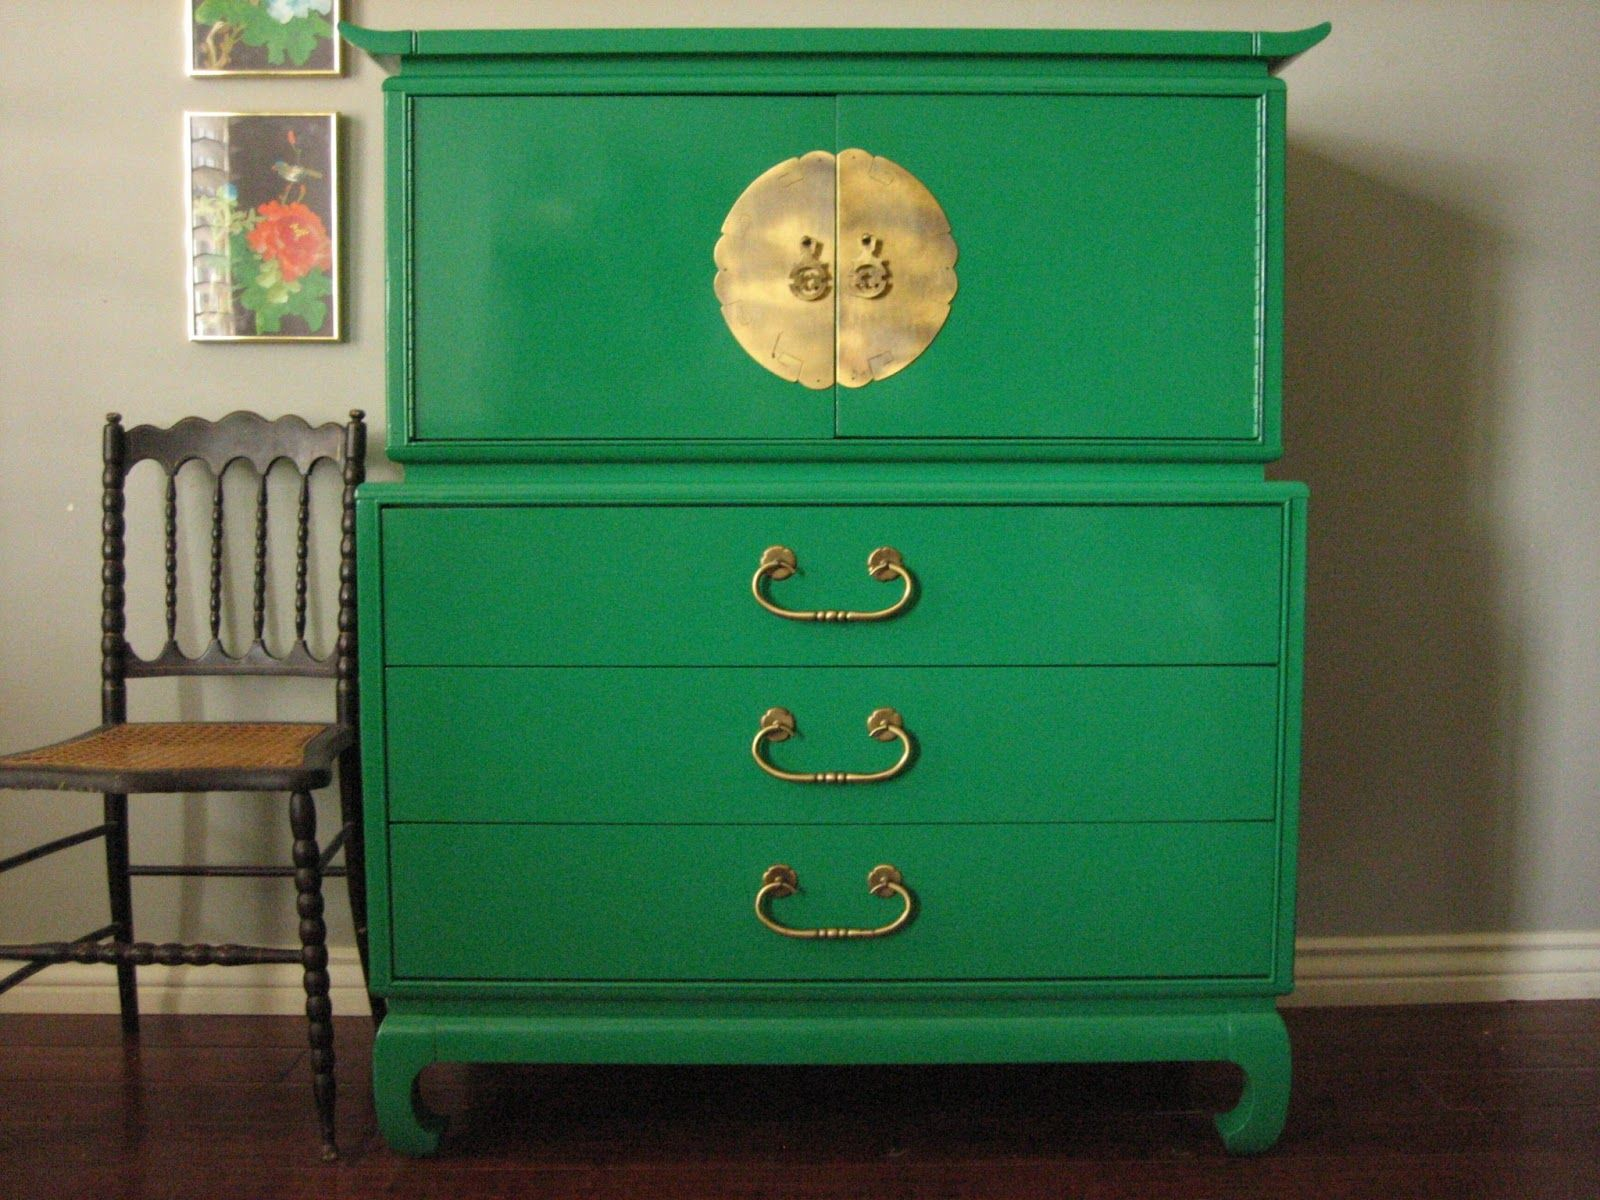 Delicieux Olive Green Cabinet To Accent An Earthy Color Into The Home With Brown Wood  Furniture. Description From Pinterest.com. I Searched For This On Bing.com/  ...